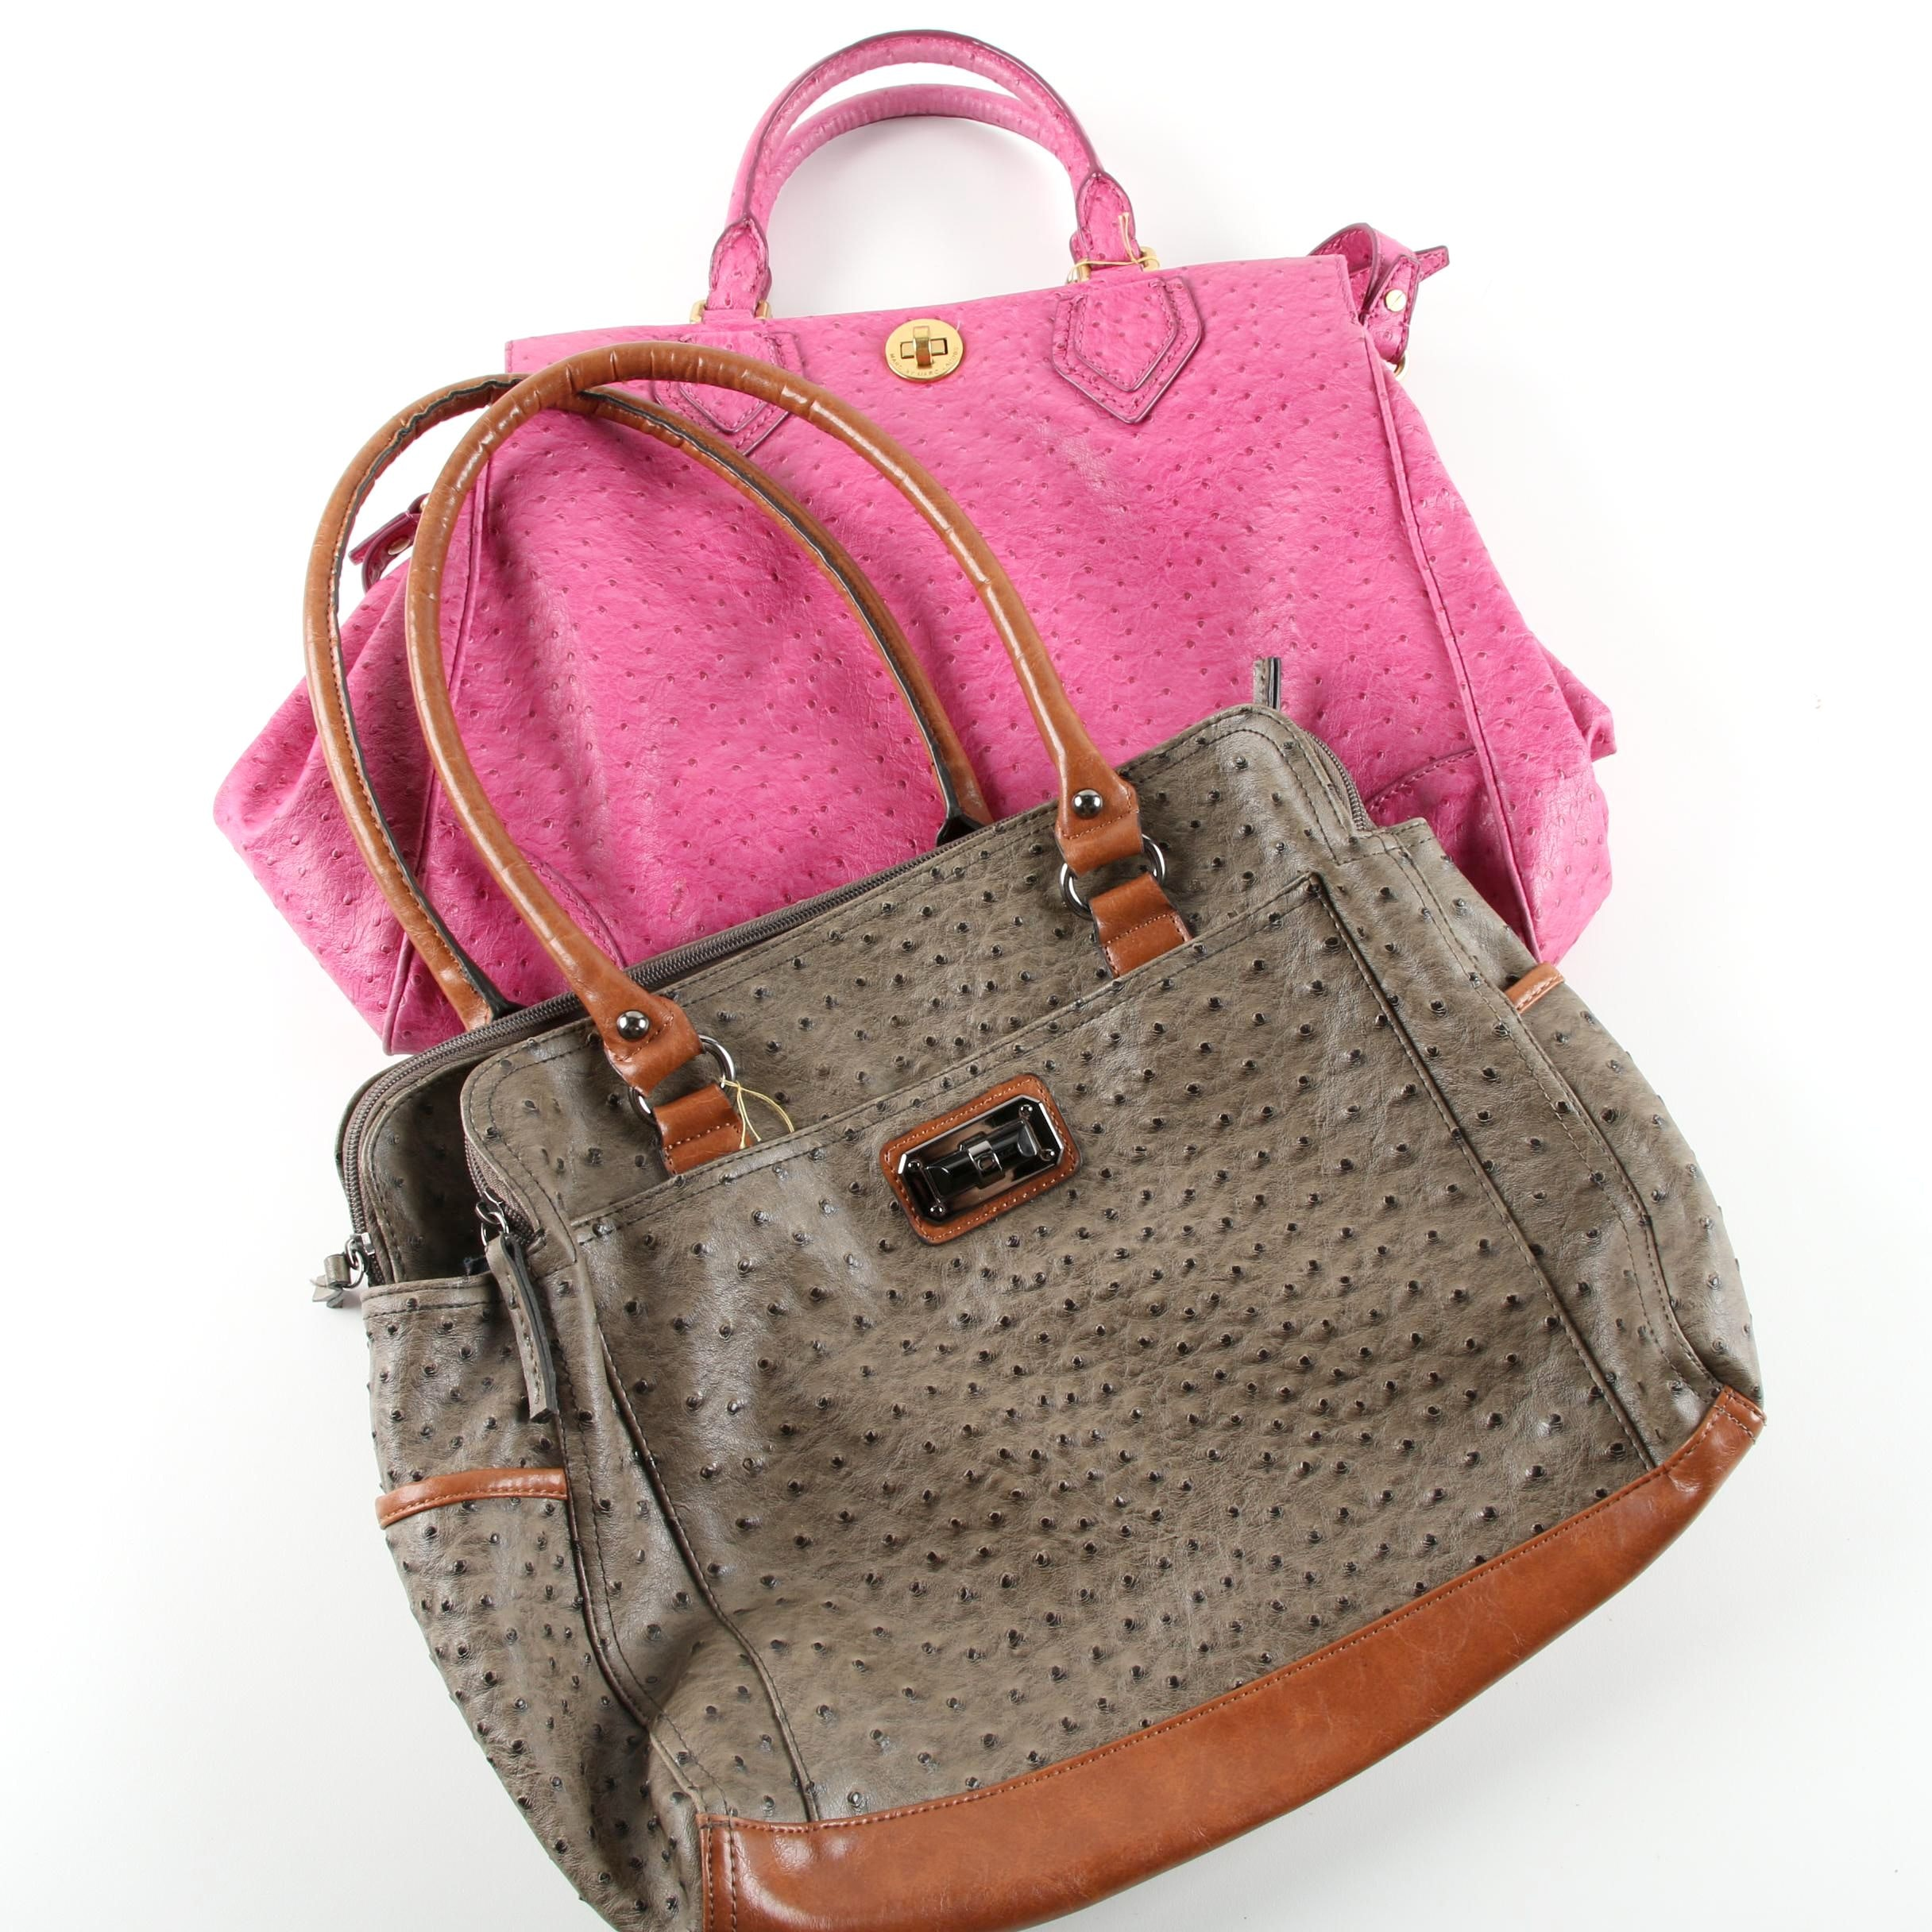 Ostrich Embossed Dyed Leather Handbags Featuring Marc by Marc Jacobs